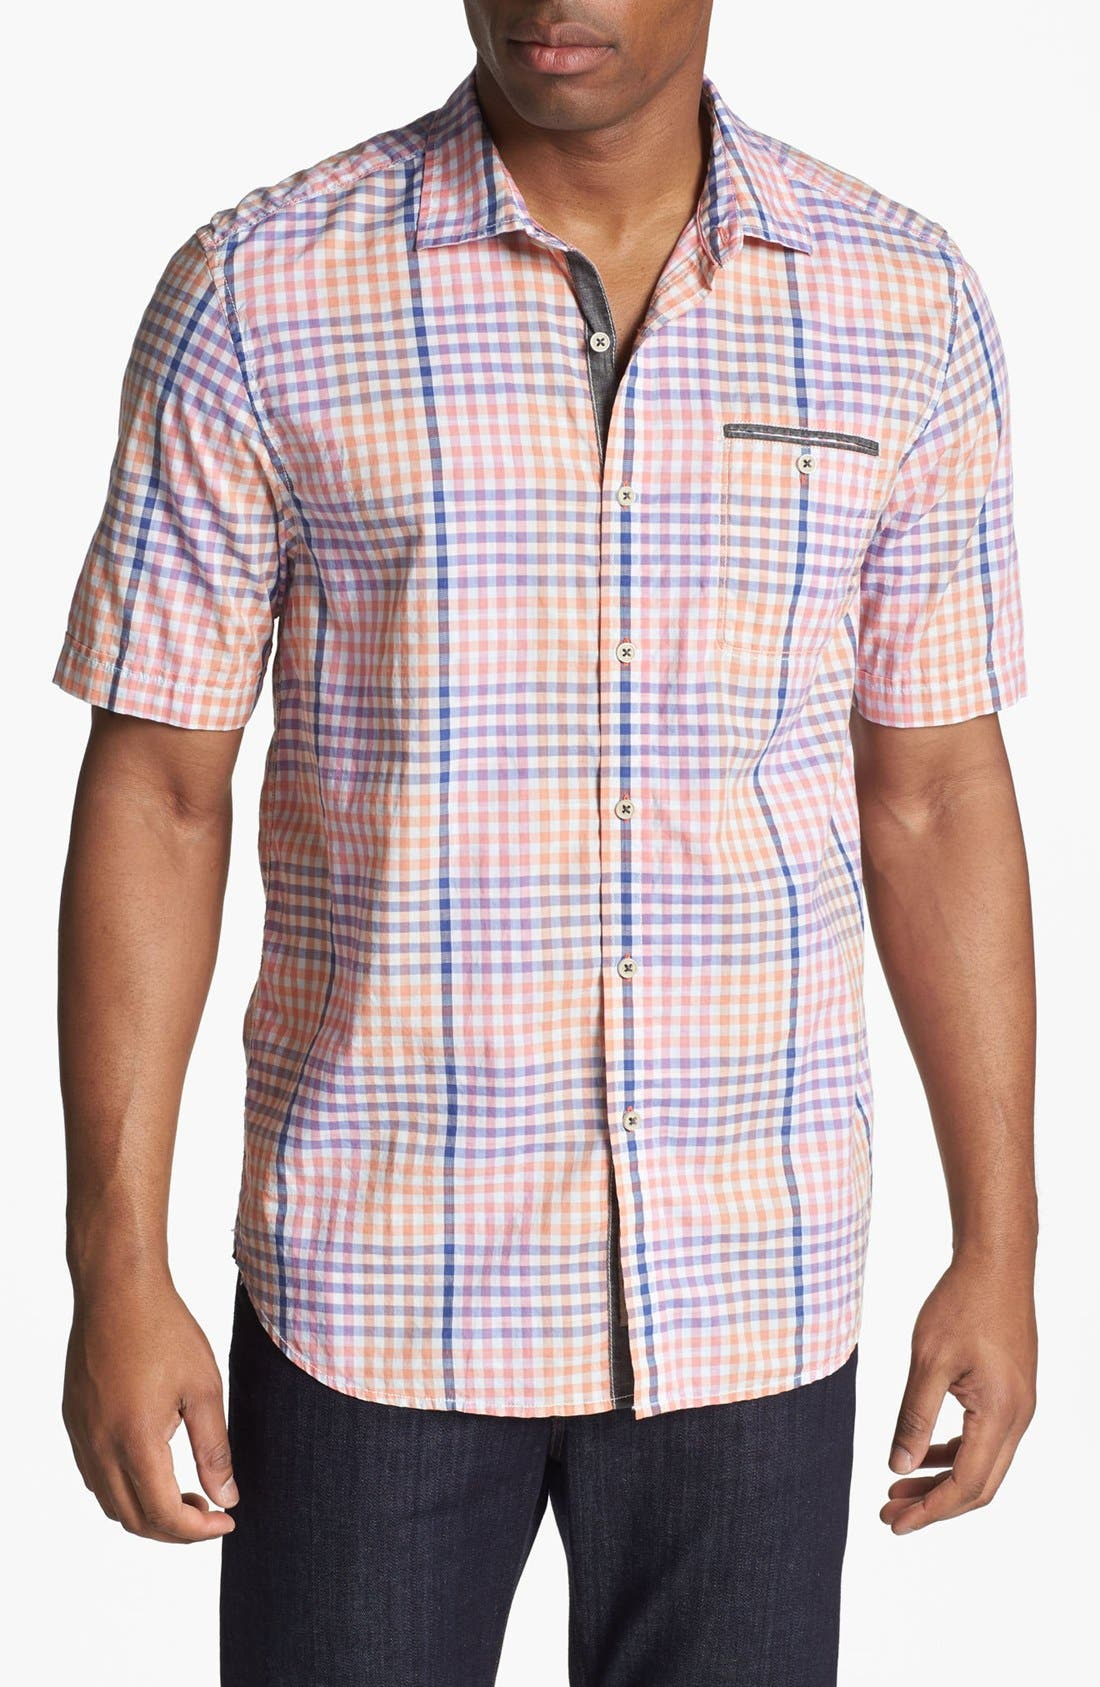 Alternate Image 1 Selected - Tommy Bahama 'United Gingham' Short Sleeve Sport Shirt